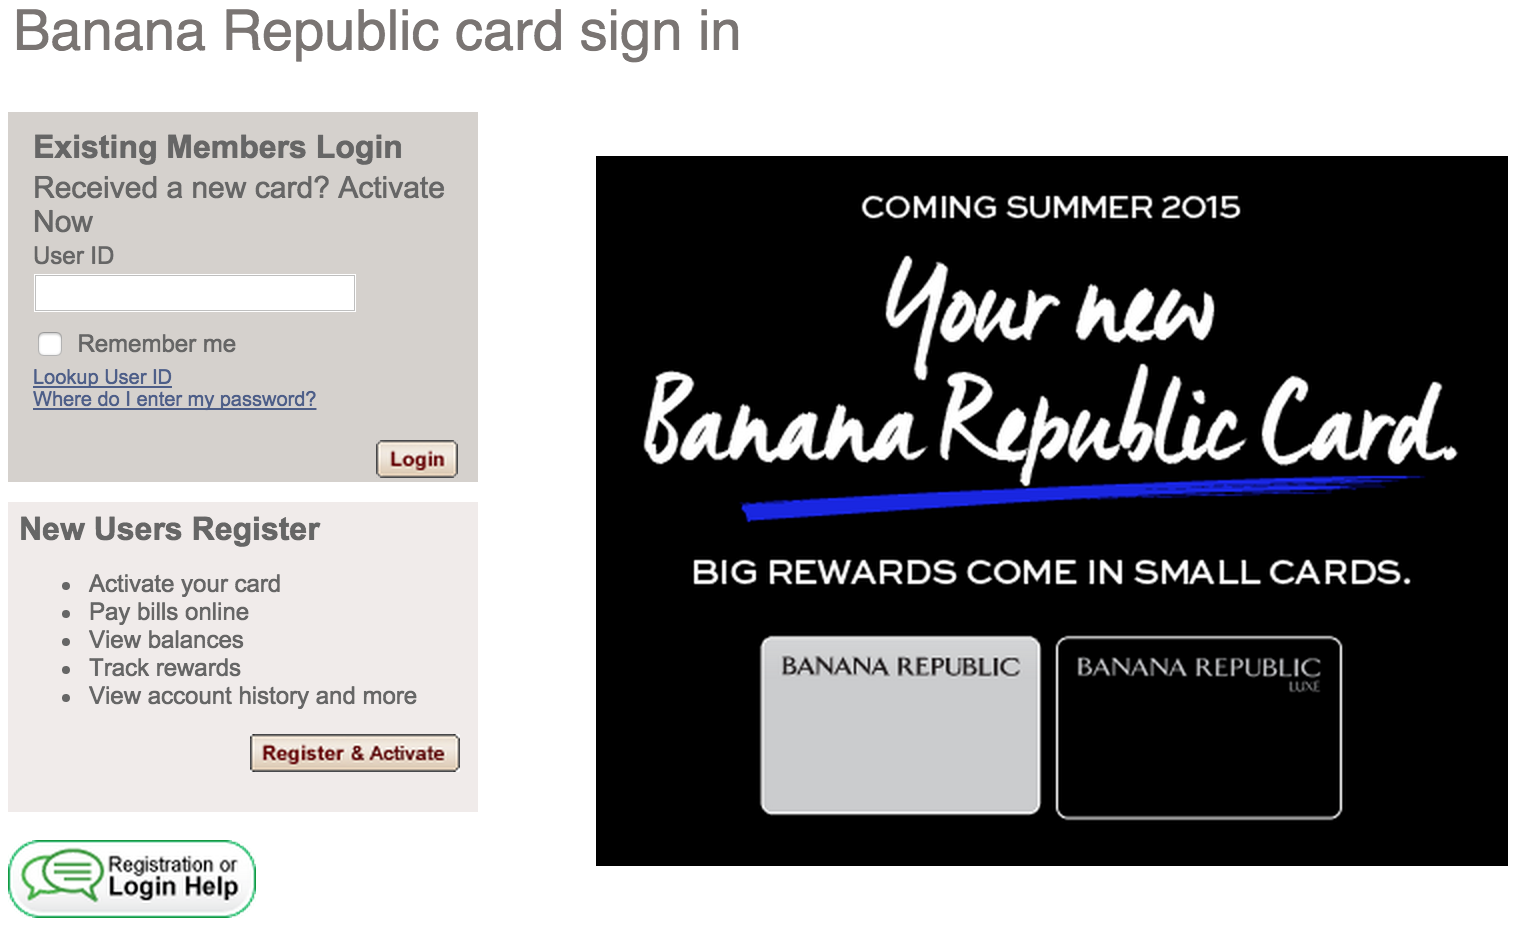 The Banana Republic Visa Card can be used anywhere where Visa is accepted. It has a similar setup to the revolving account. It is designed for those with fair credit, which means that the .